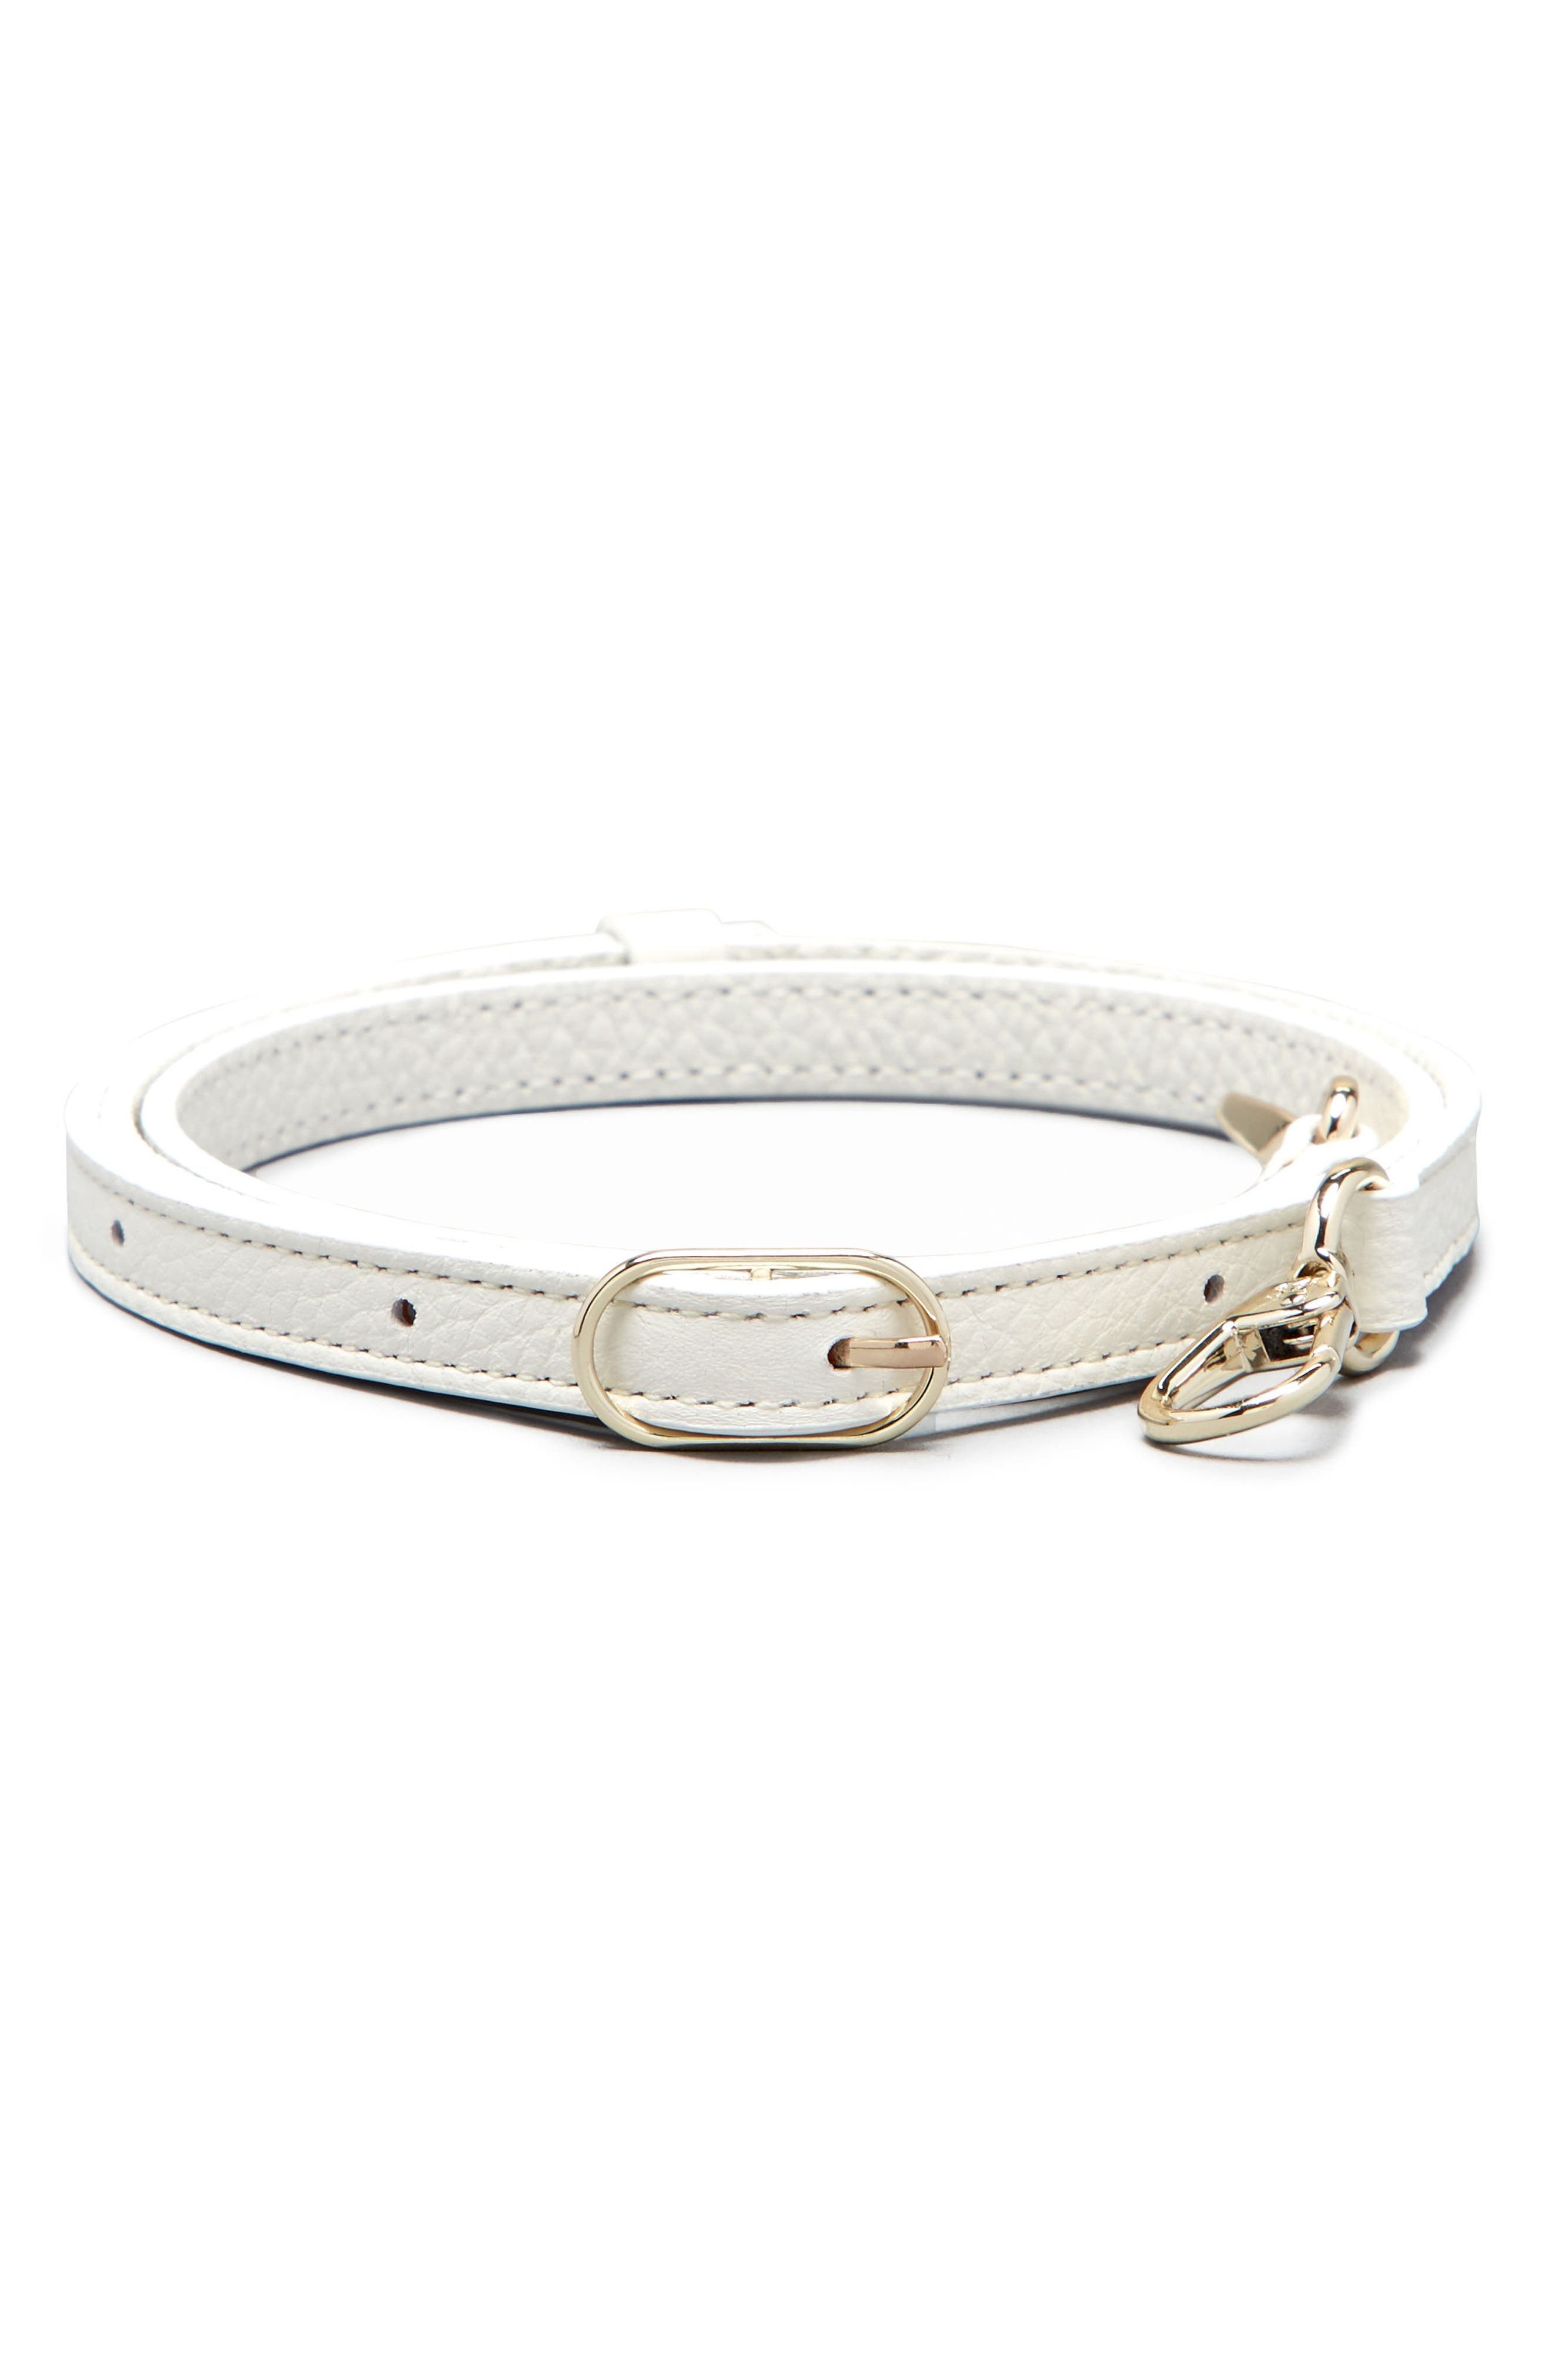 Main Image - Pop & Suki Leather Fanny Strap (Nordstrom Exclusive)